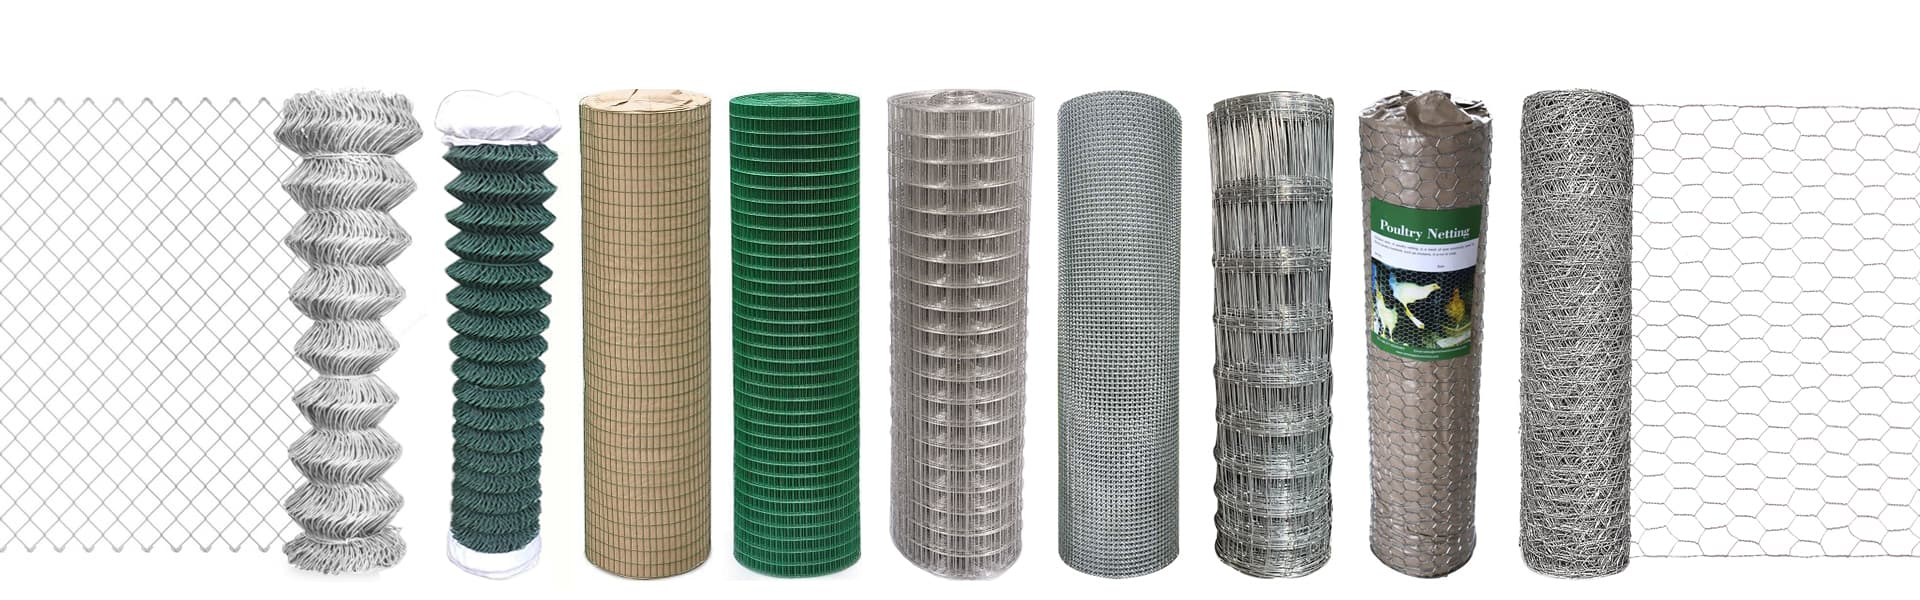 Welded Wire Mesh, Hexagonal Wire Mesh, Square Wire Mesh